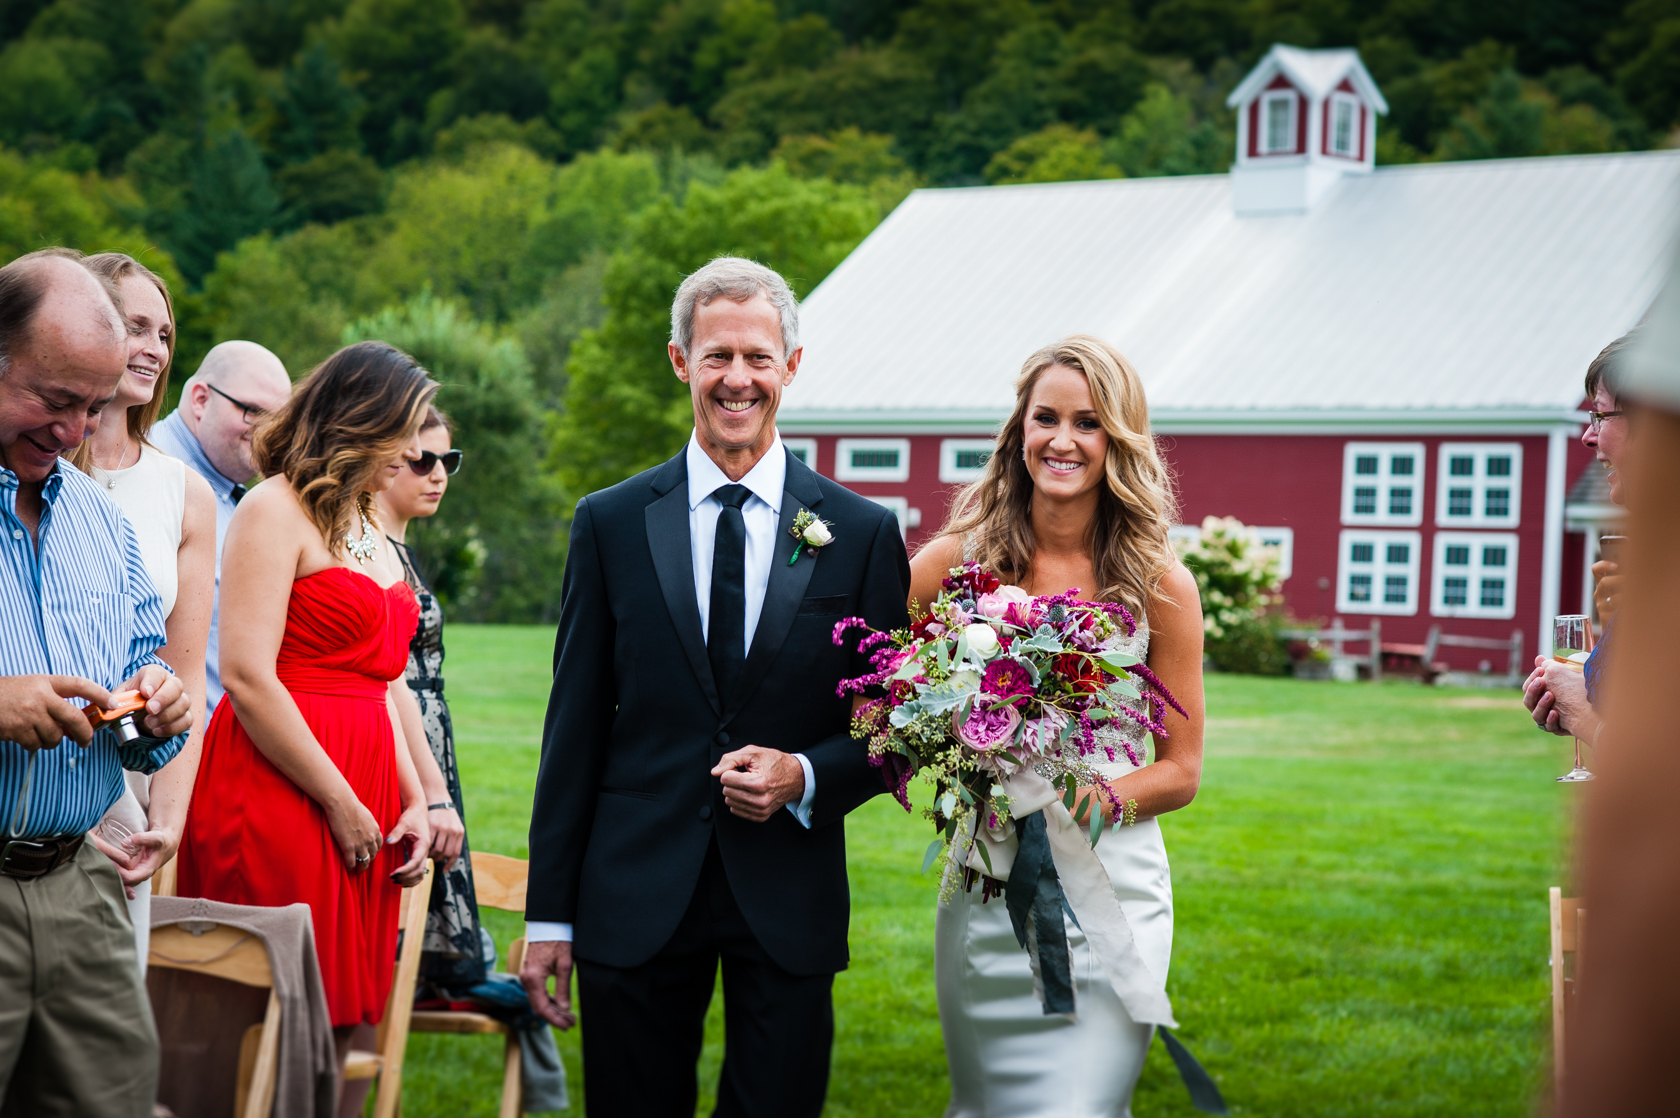 beaming dad walks his beautiful daughter down the aisle to get married